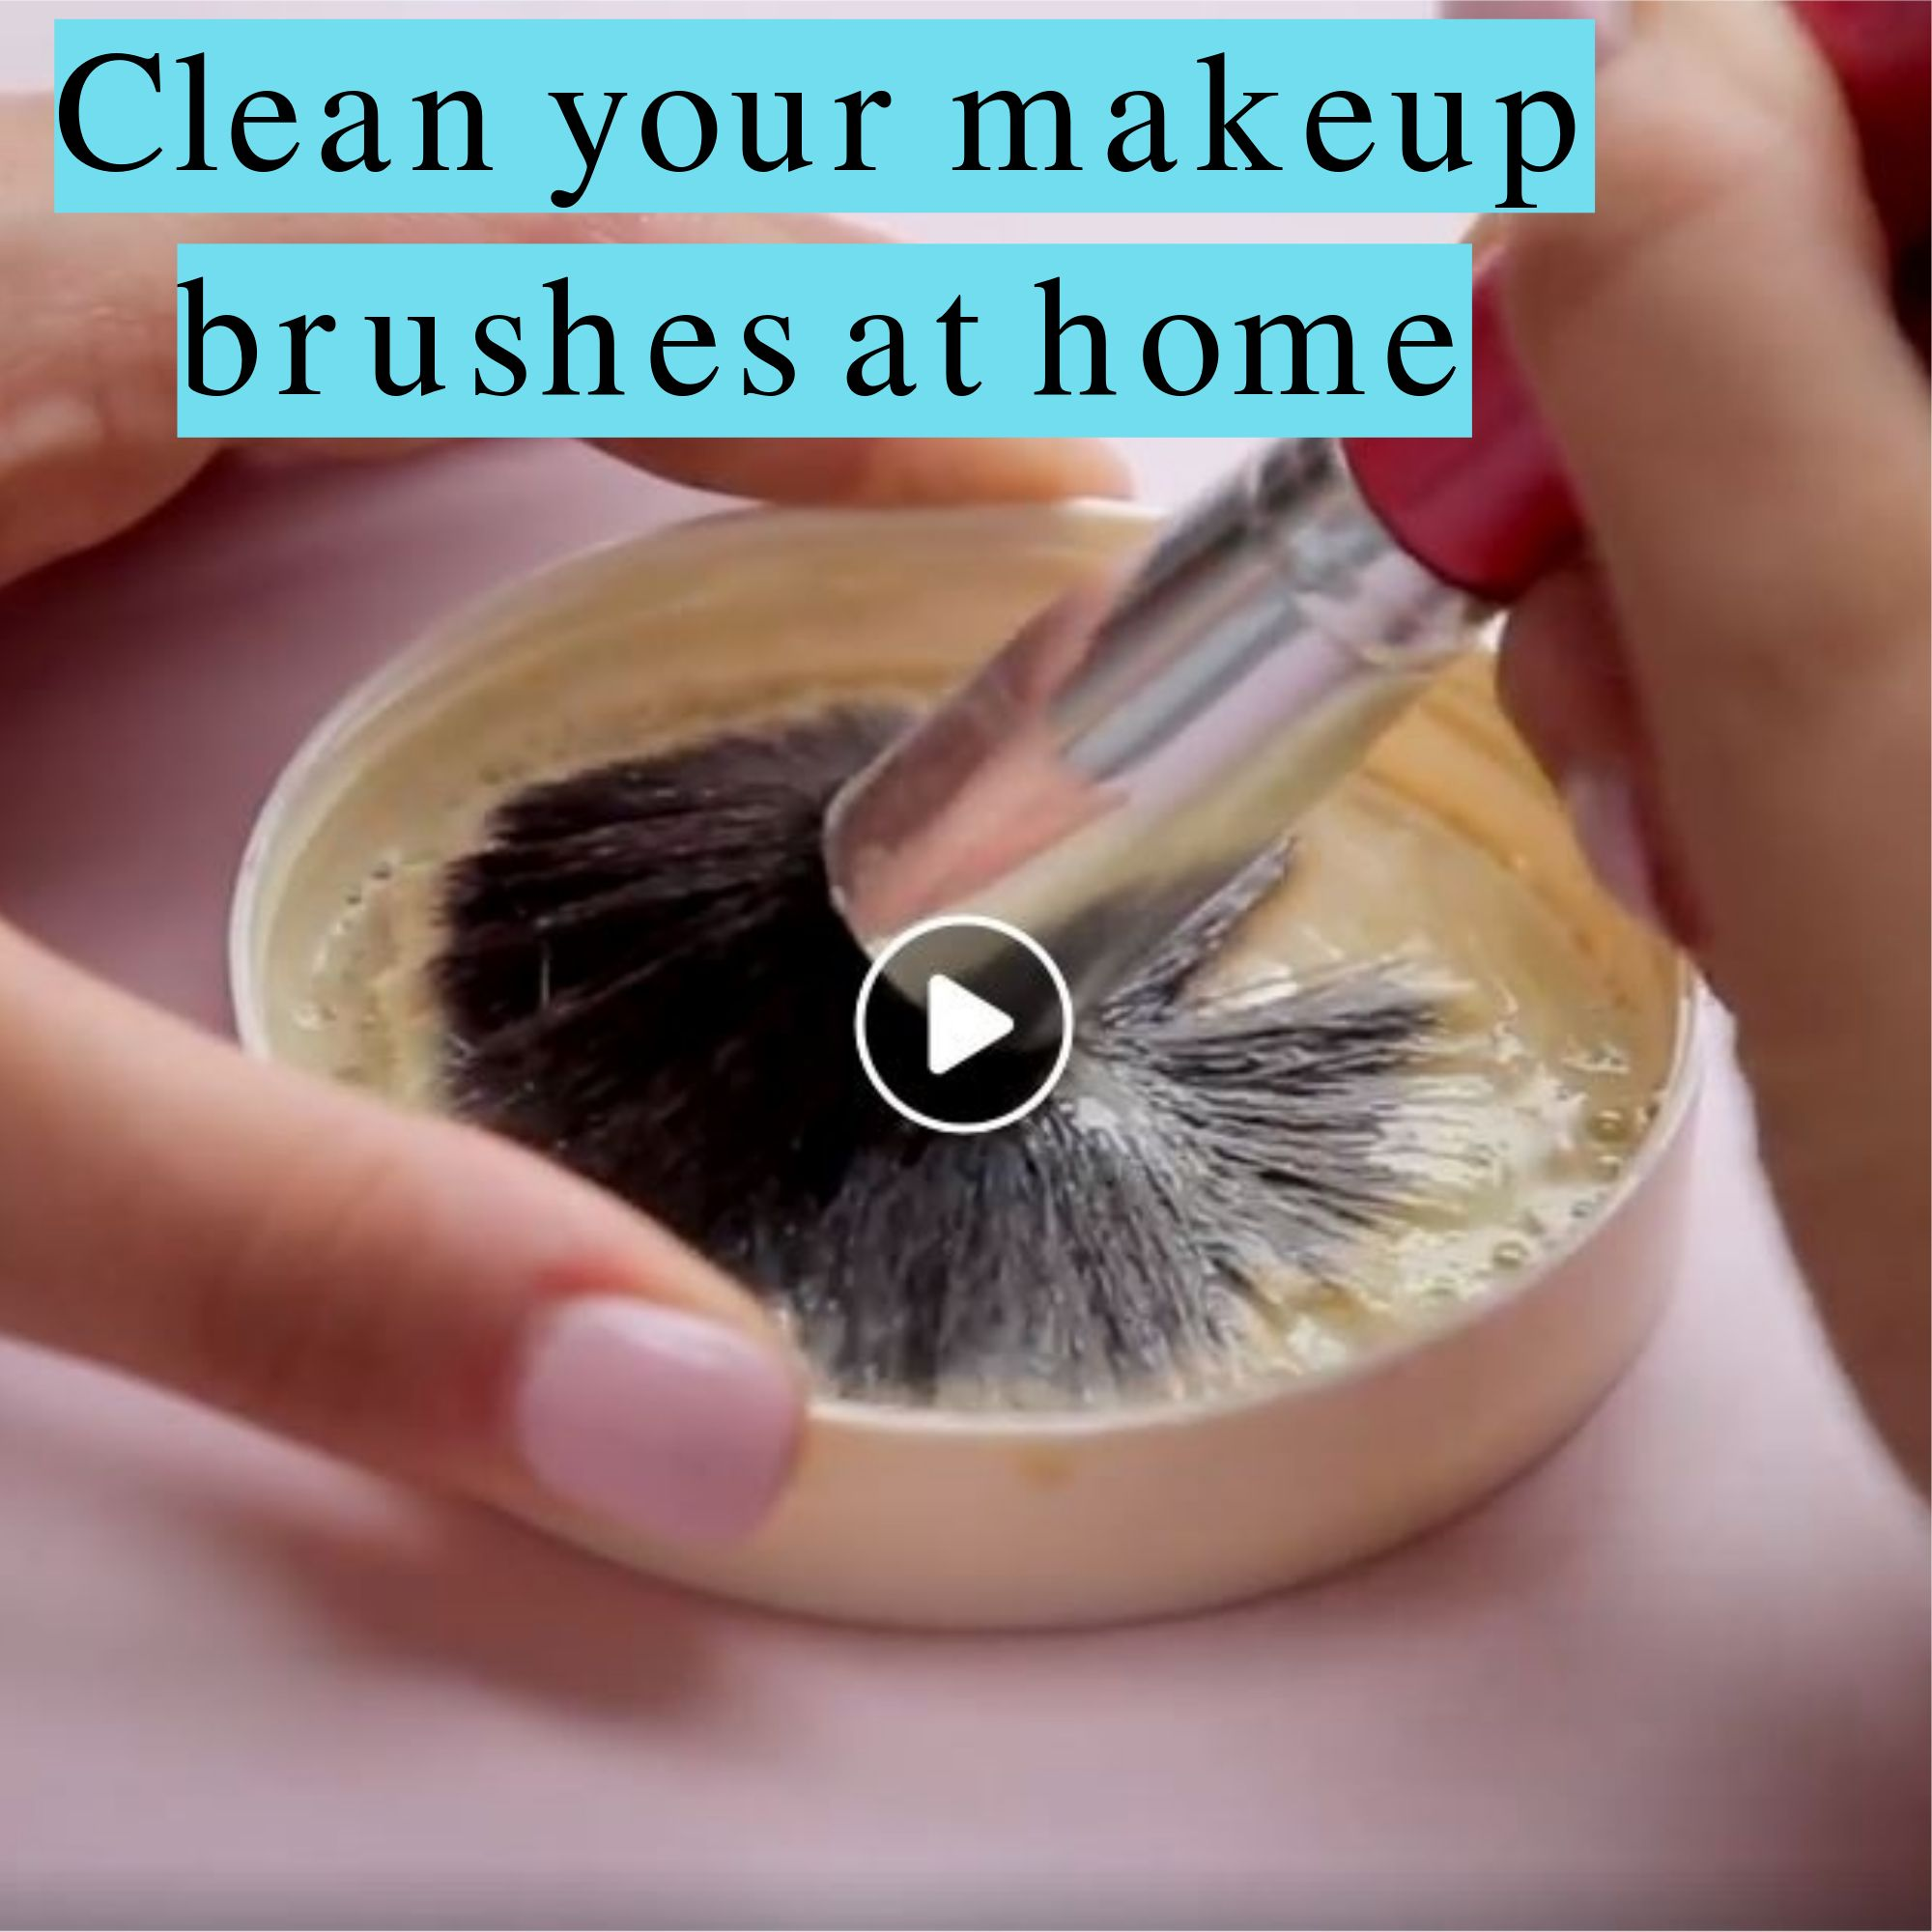 Clean your makeup brushes at home Makeup yourself